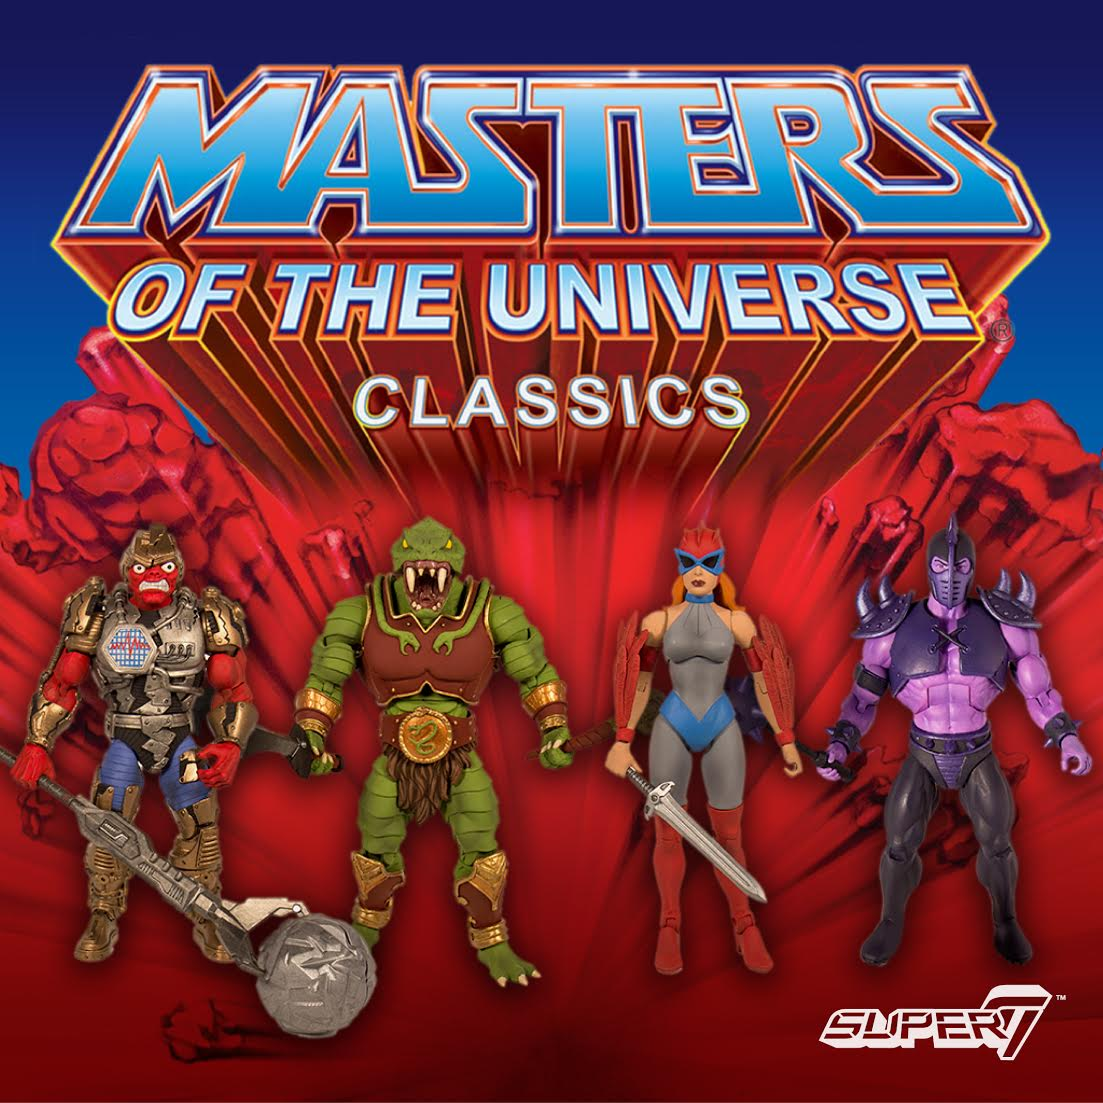 master of the universe Master universe 394 likes stoner rock band from méxico city jenny bombo-guitar and vocals fernando benitez-drums and vocals bass-eric velazquez.